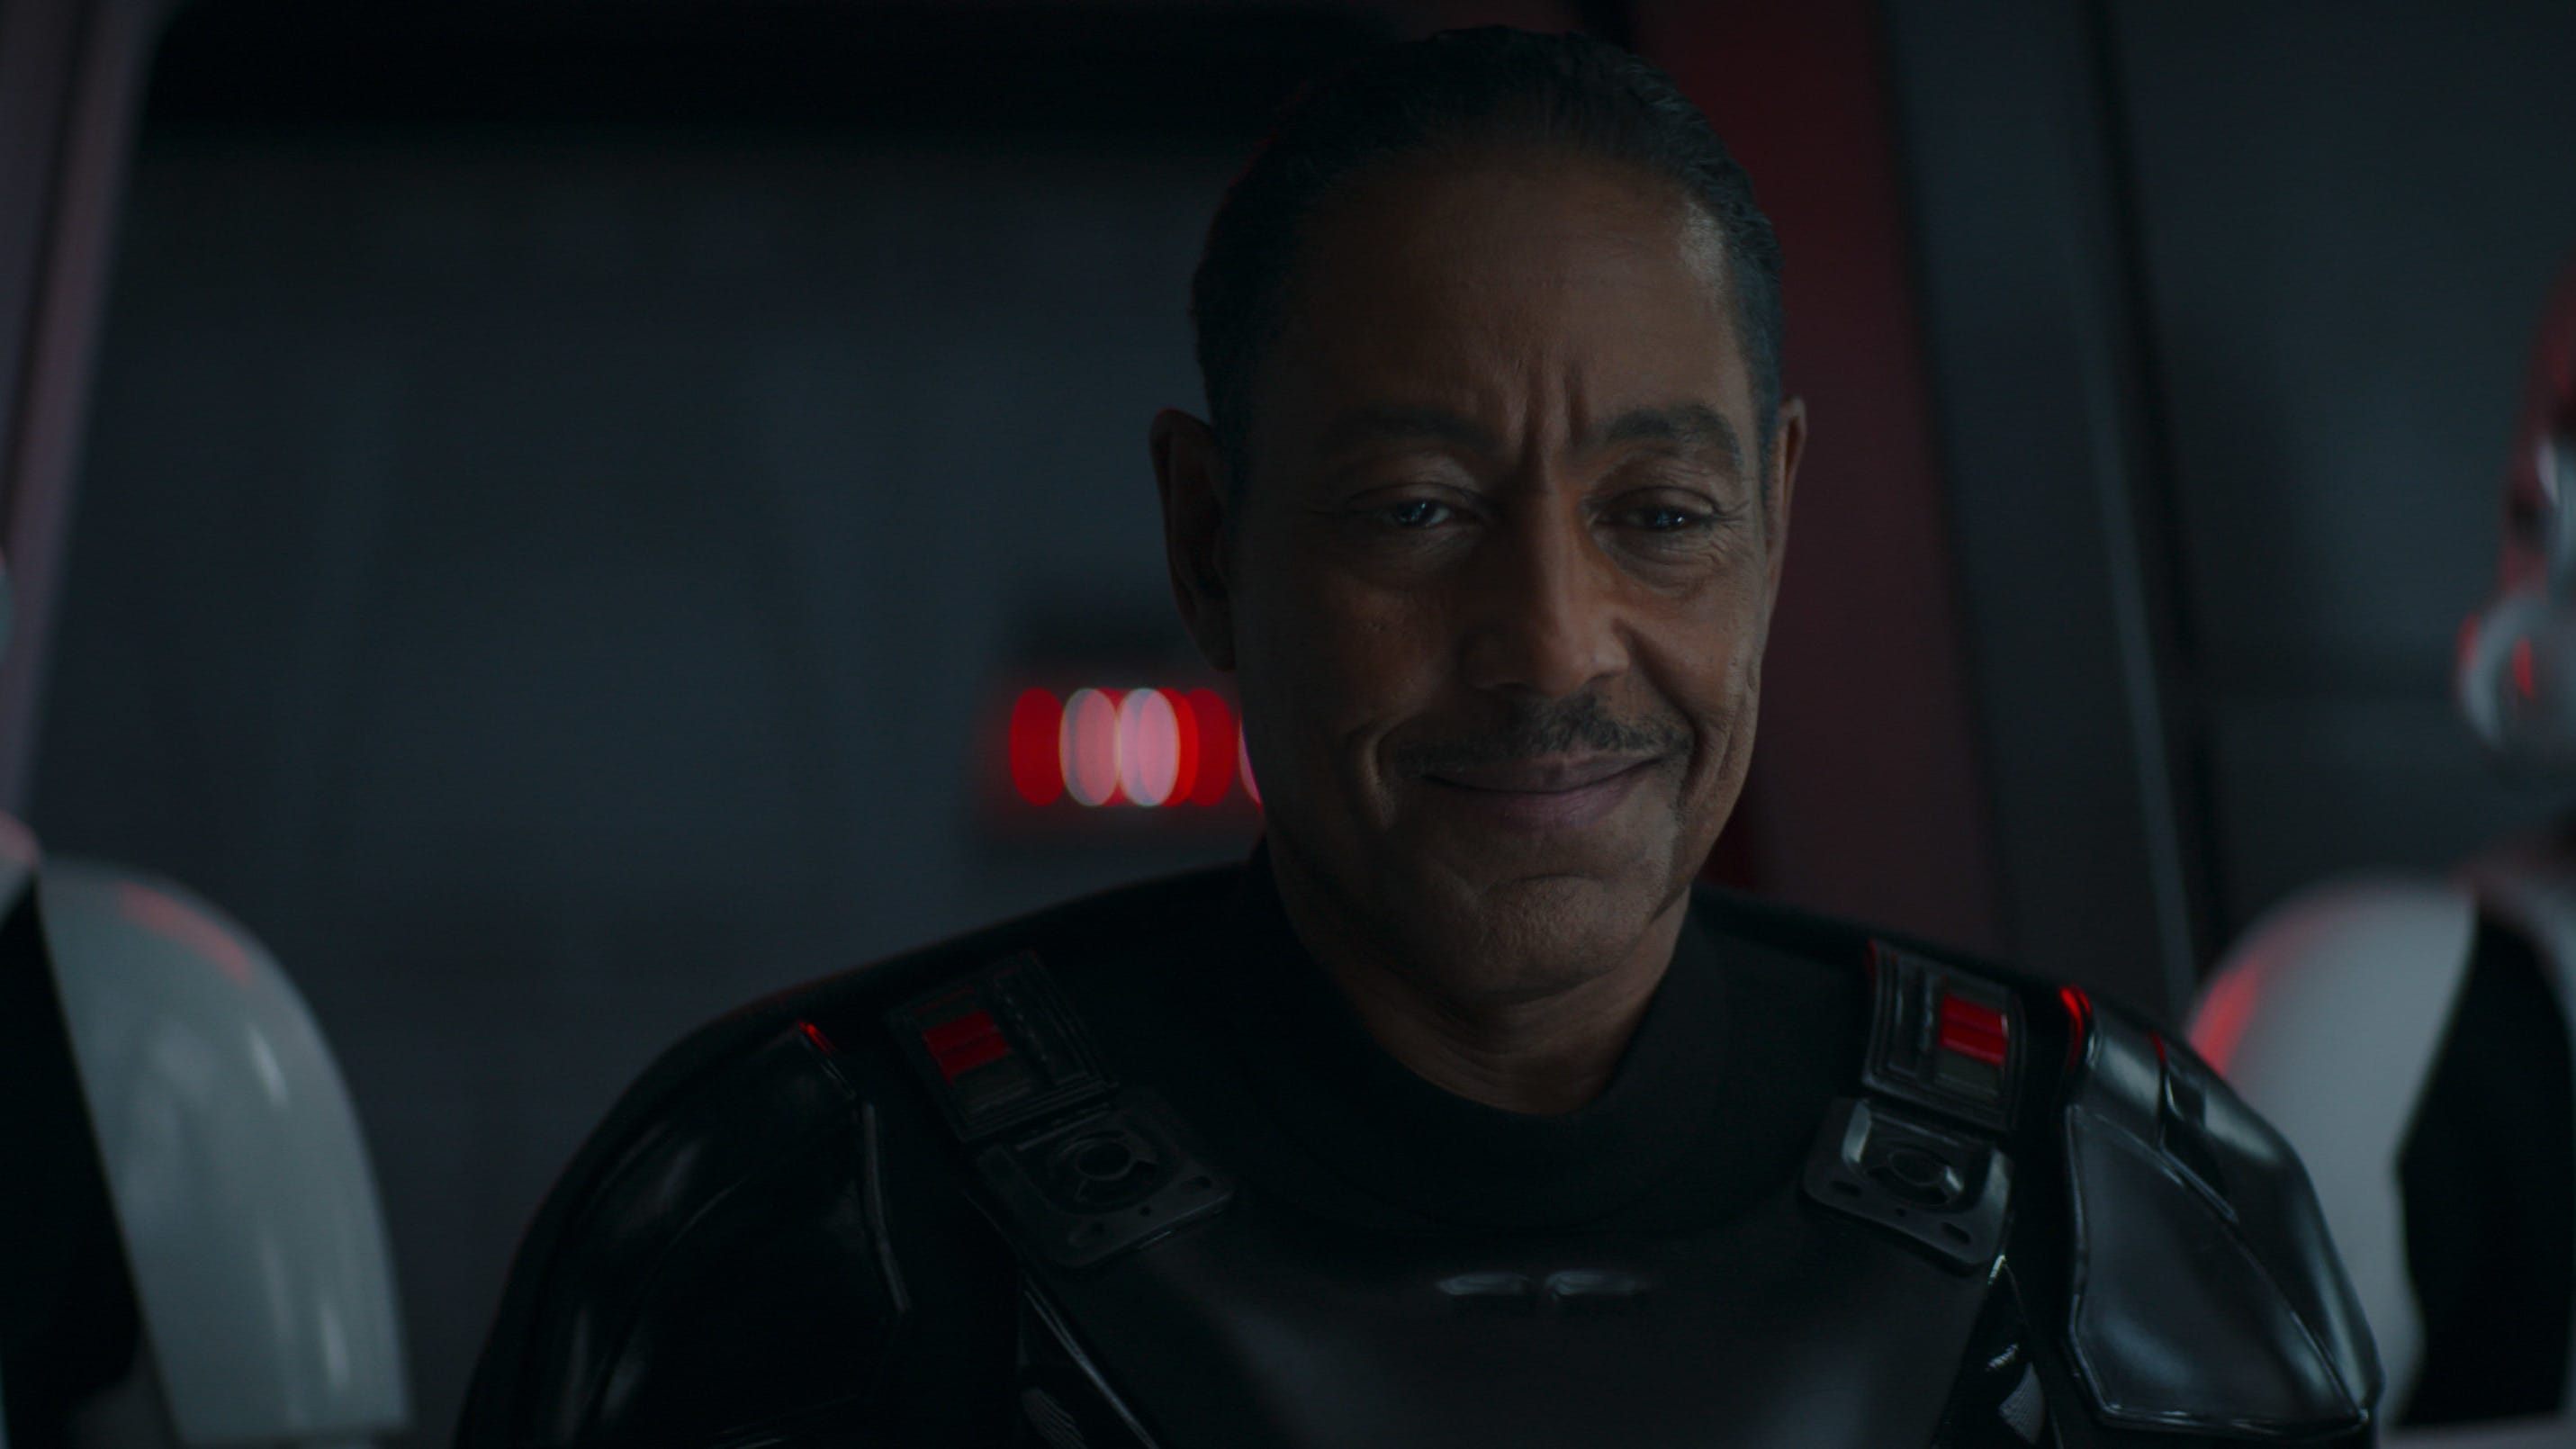 Moff Gideon (Giancarlo Esposito) in Lucasfilm's THE MANDALORIAN, season two, exclusively on Disney+. © 2020 Lucasfilm Ltd. & ™. All Rights Reserved.